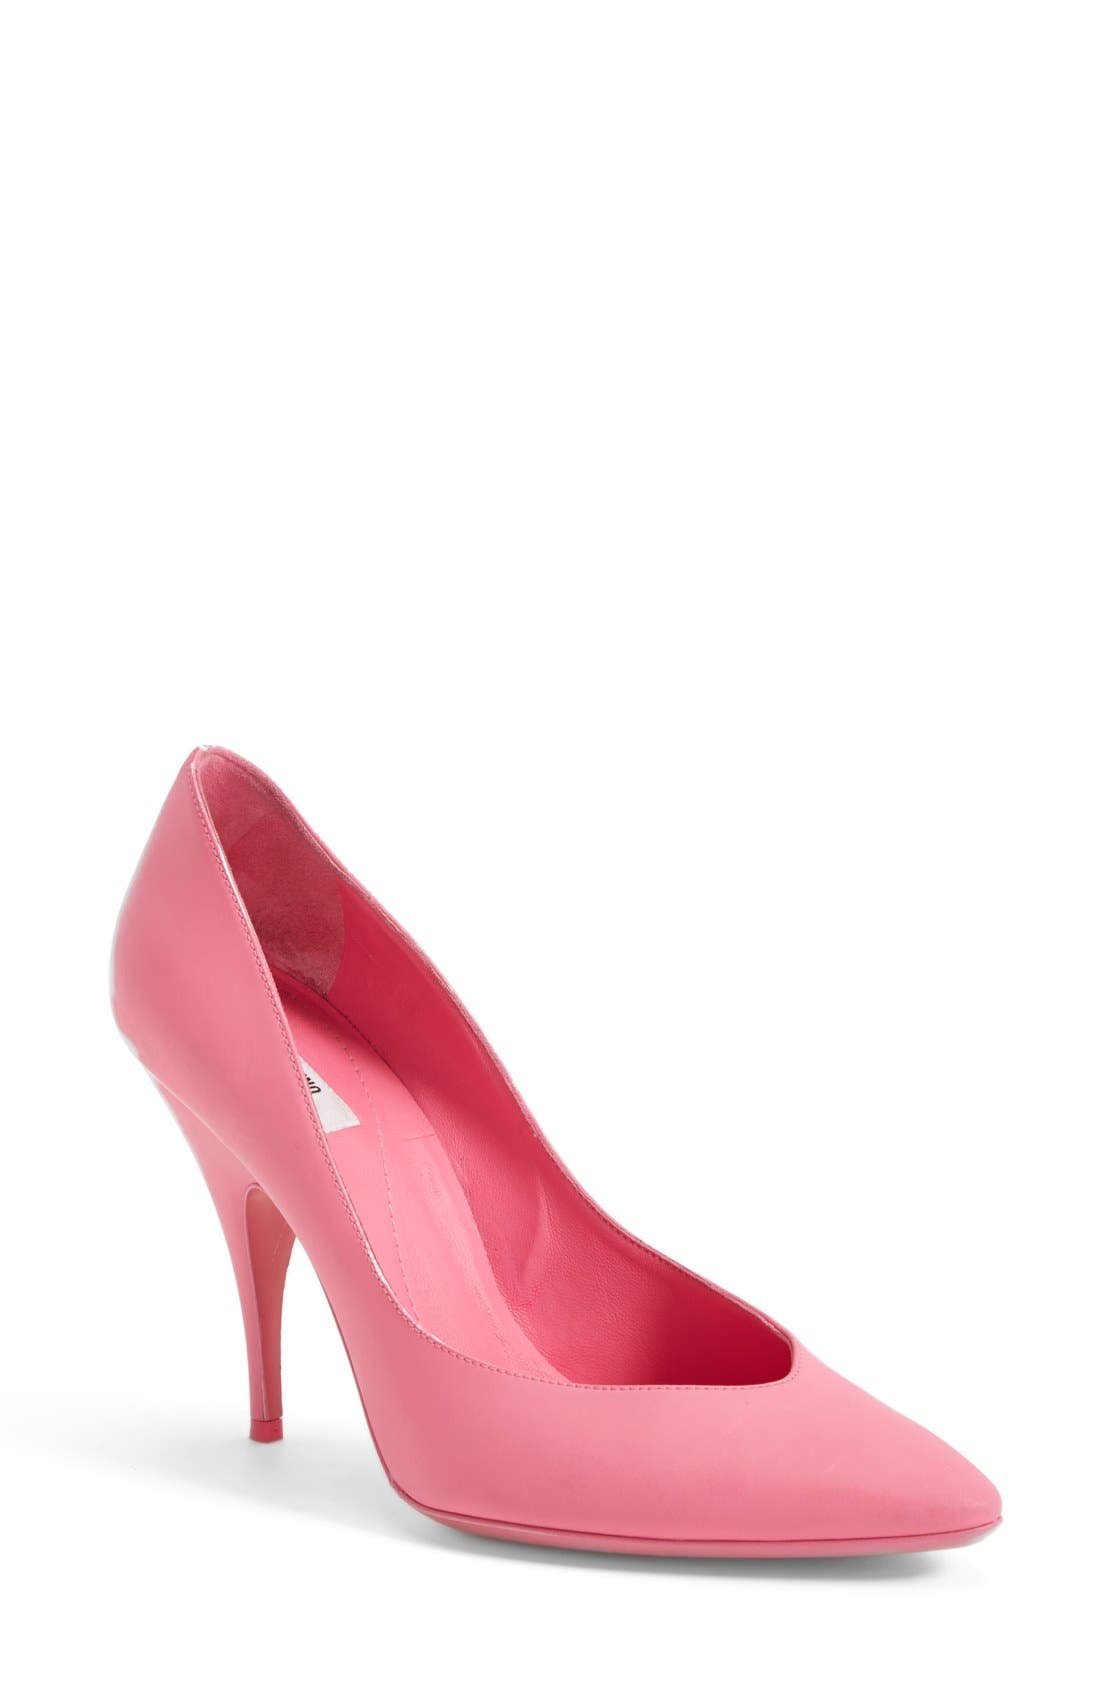 Alternate Image 1 Selected - Moschino Leather Pump (Women)